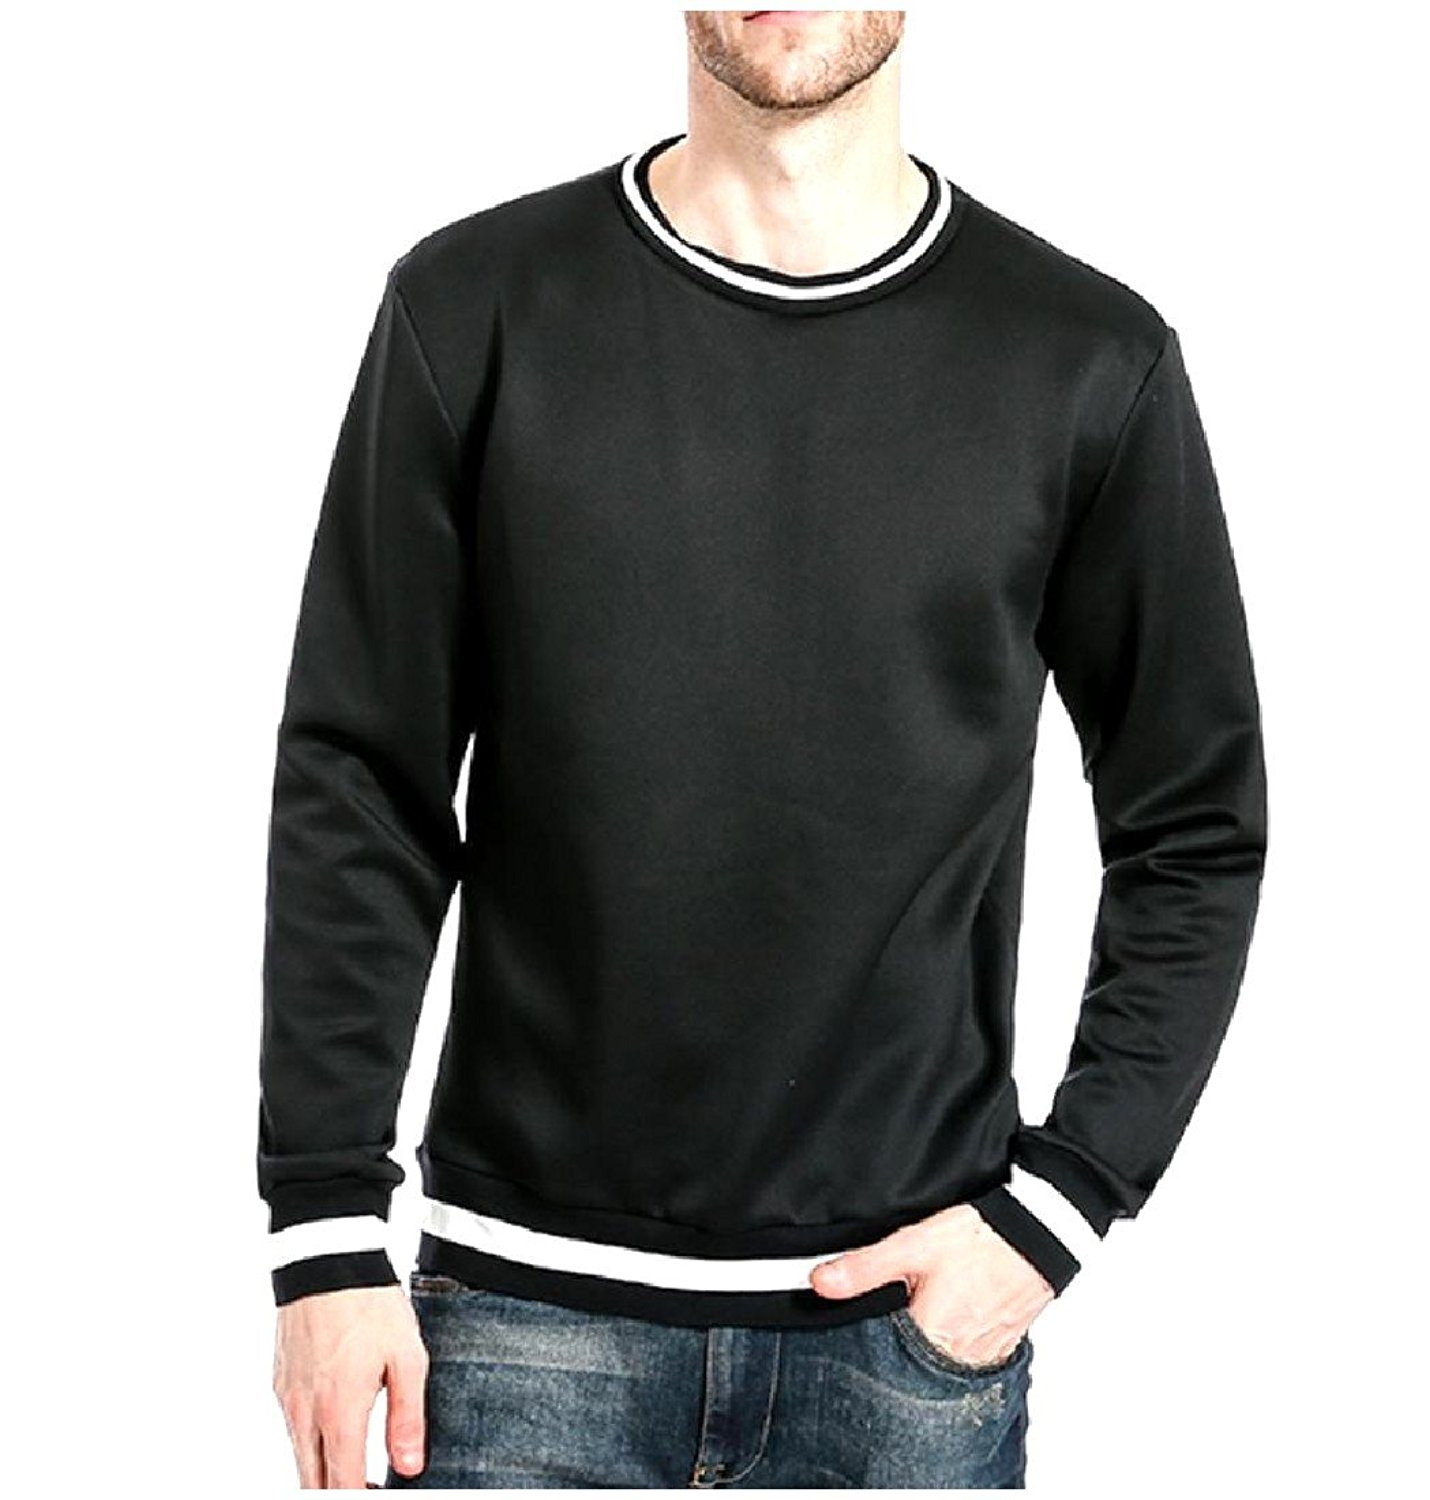 Coolred-Men Long-Sleeve Loose-Fit Relaxed Stitch Crewneck Sweatshirt